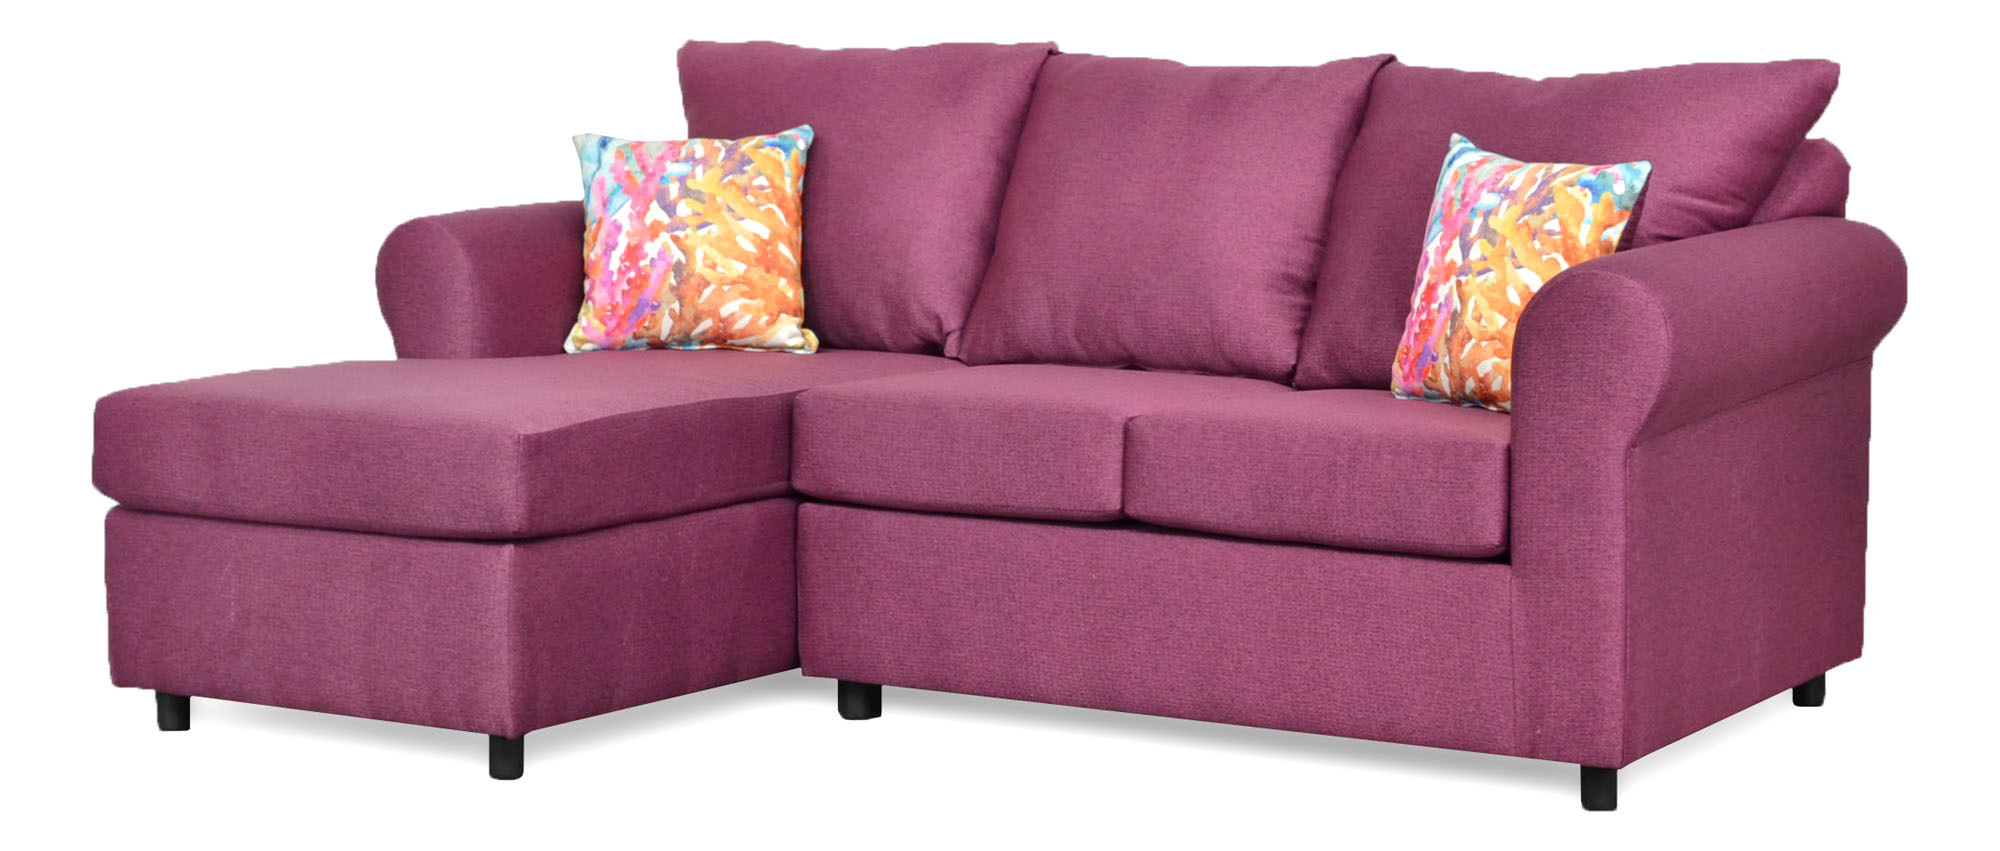 151 Leah Sectional $595.9